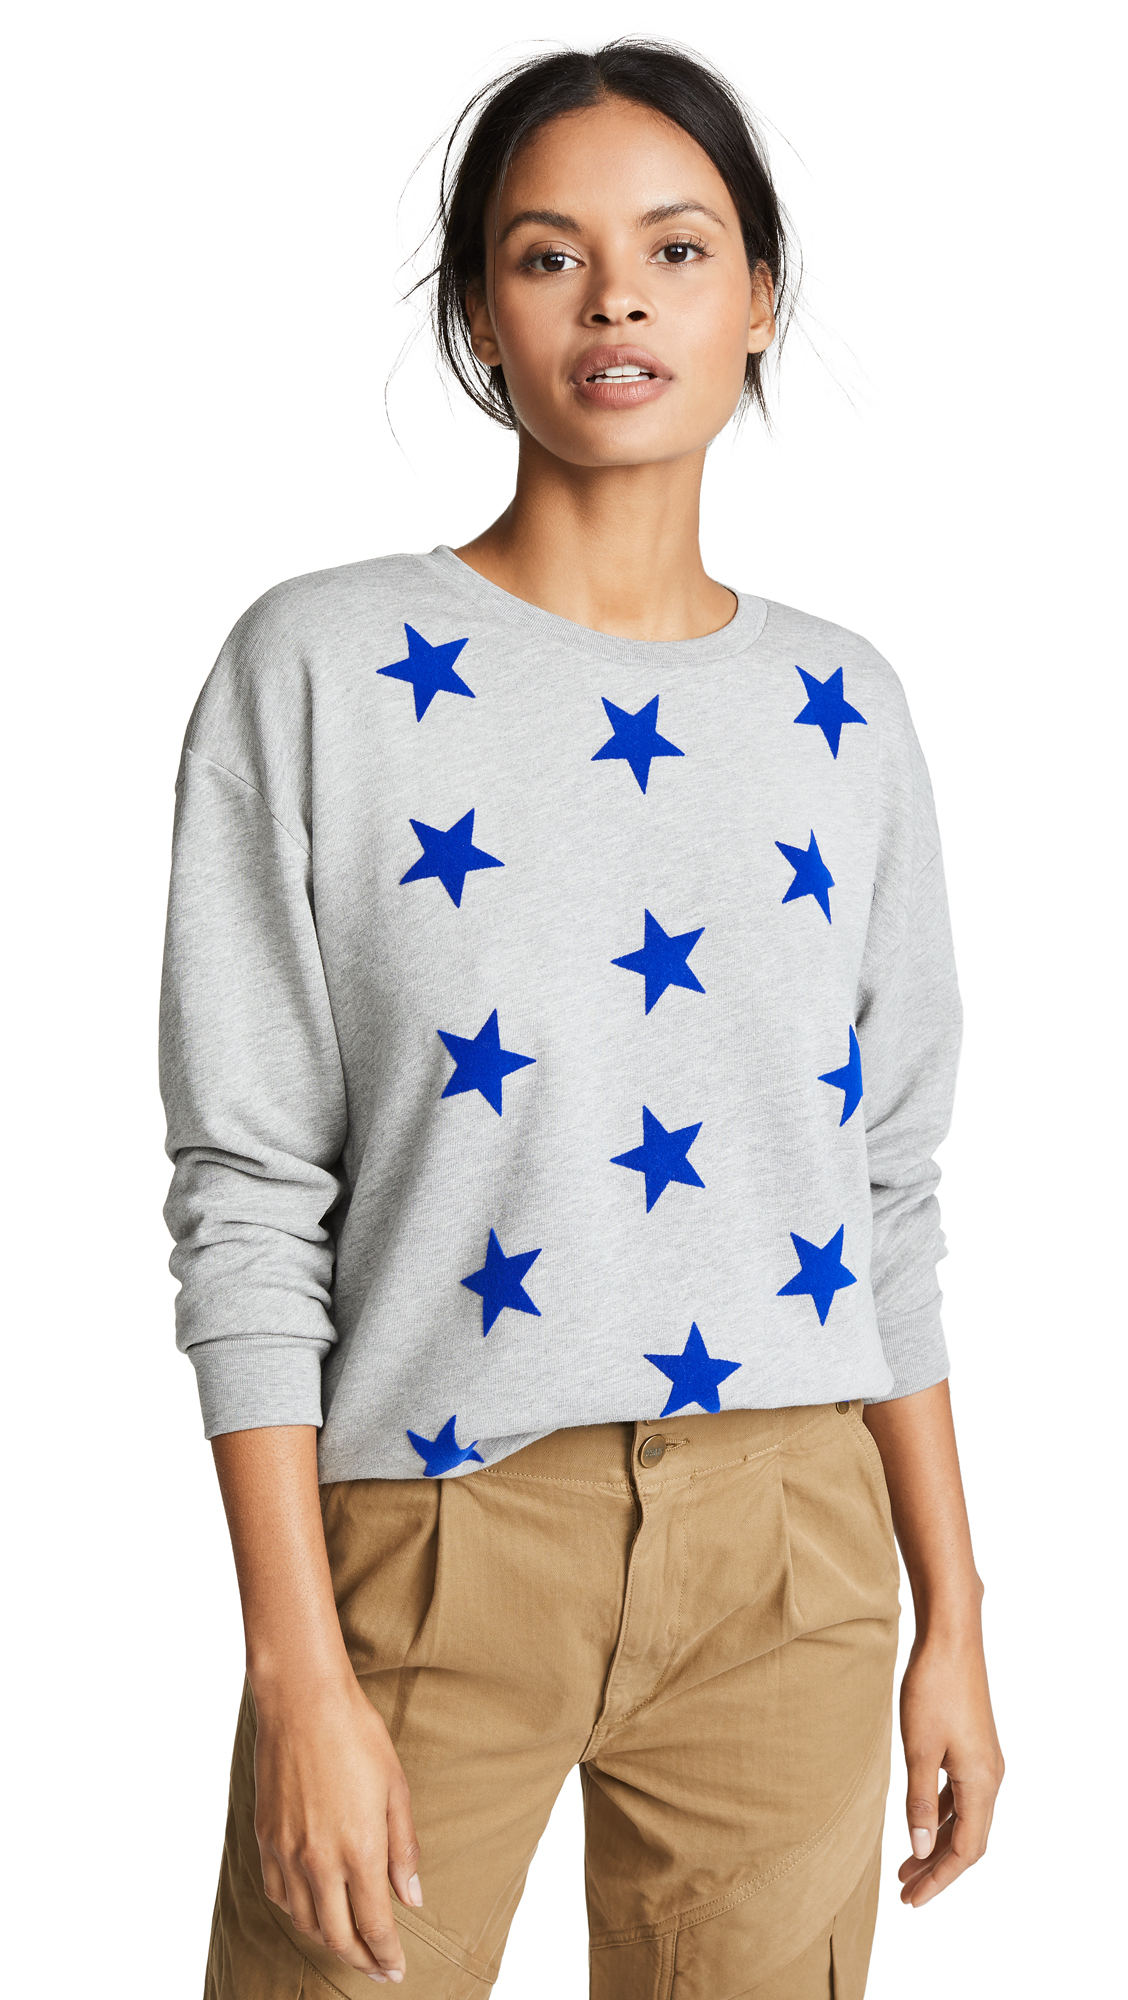 ALEXA SUPERSTAR SWEATSHIRT